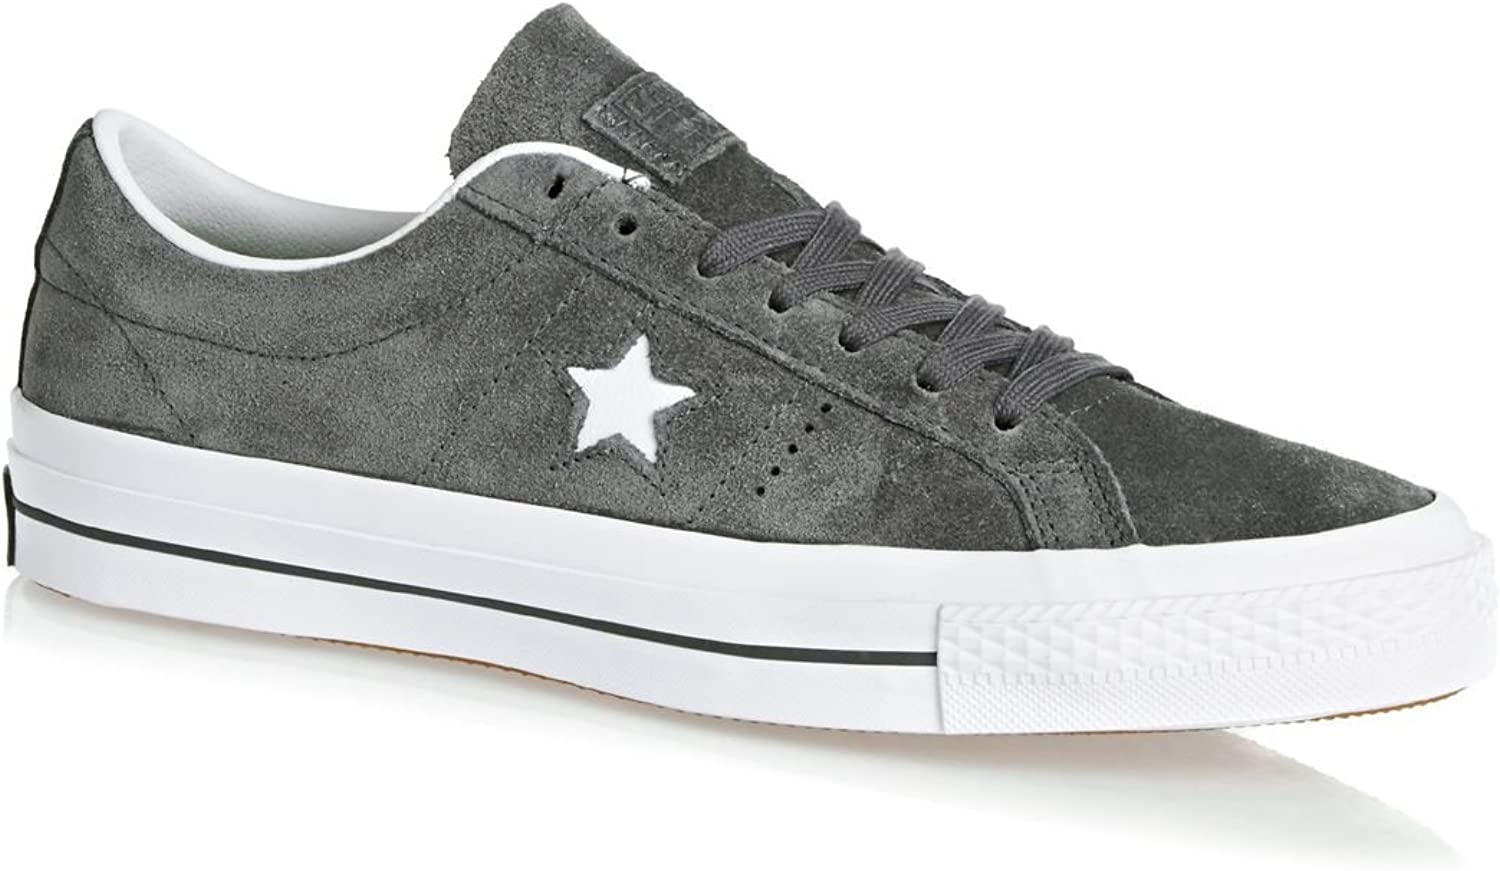 Converse Unisex Adults' Cons One Star Suede Low-Top Sneakers